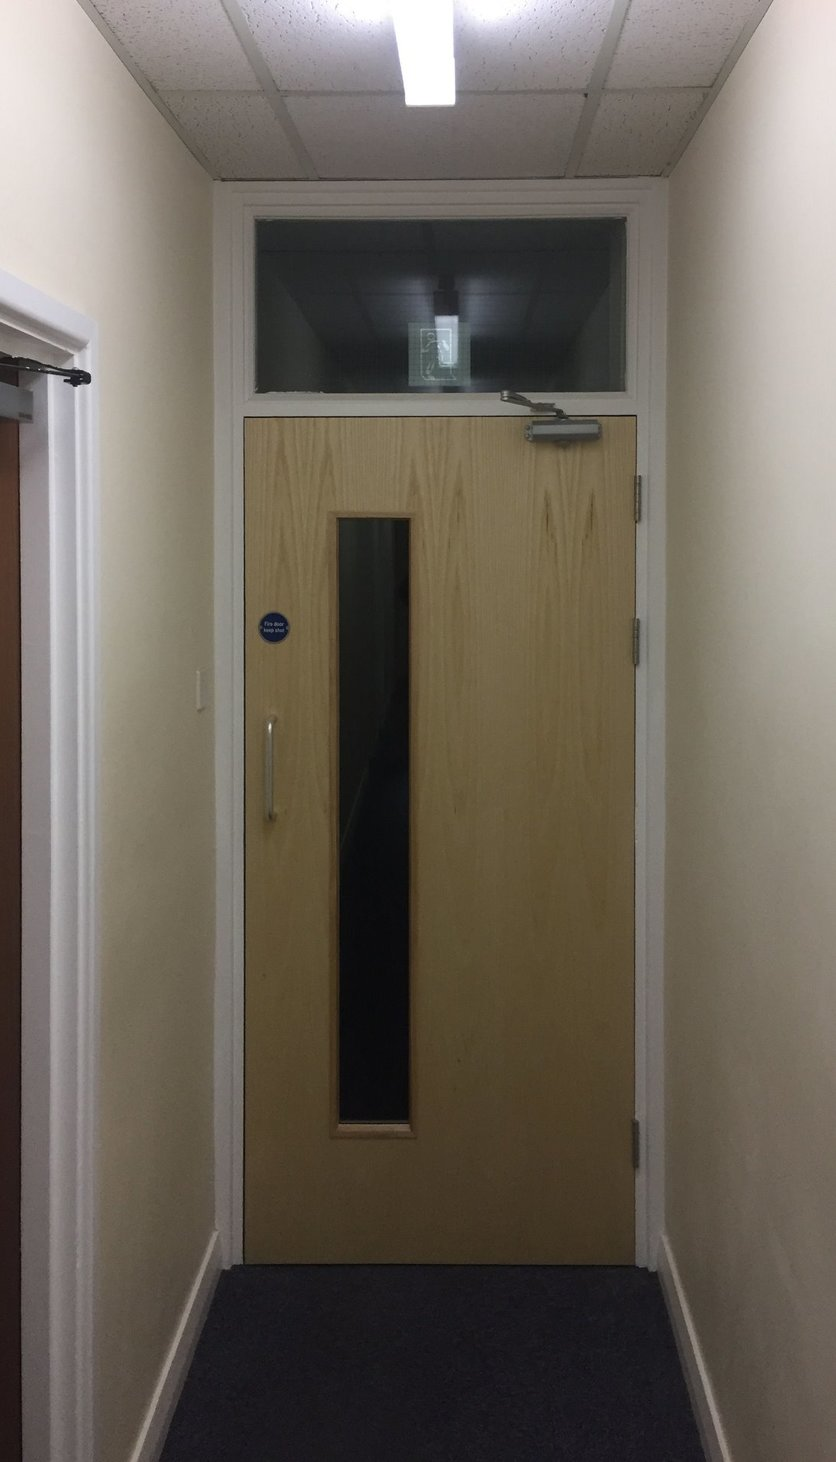 All doors installed to current regulations, improving the safety aspect of the door and the aesthetic value of the doors modernized the corridor in North Devon